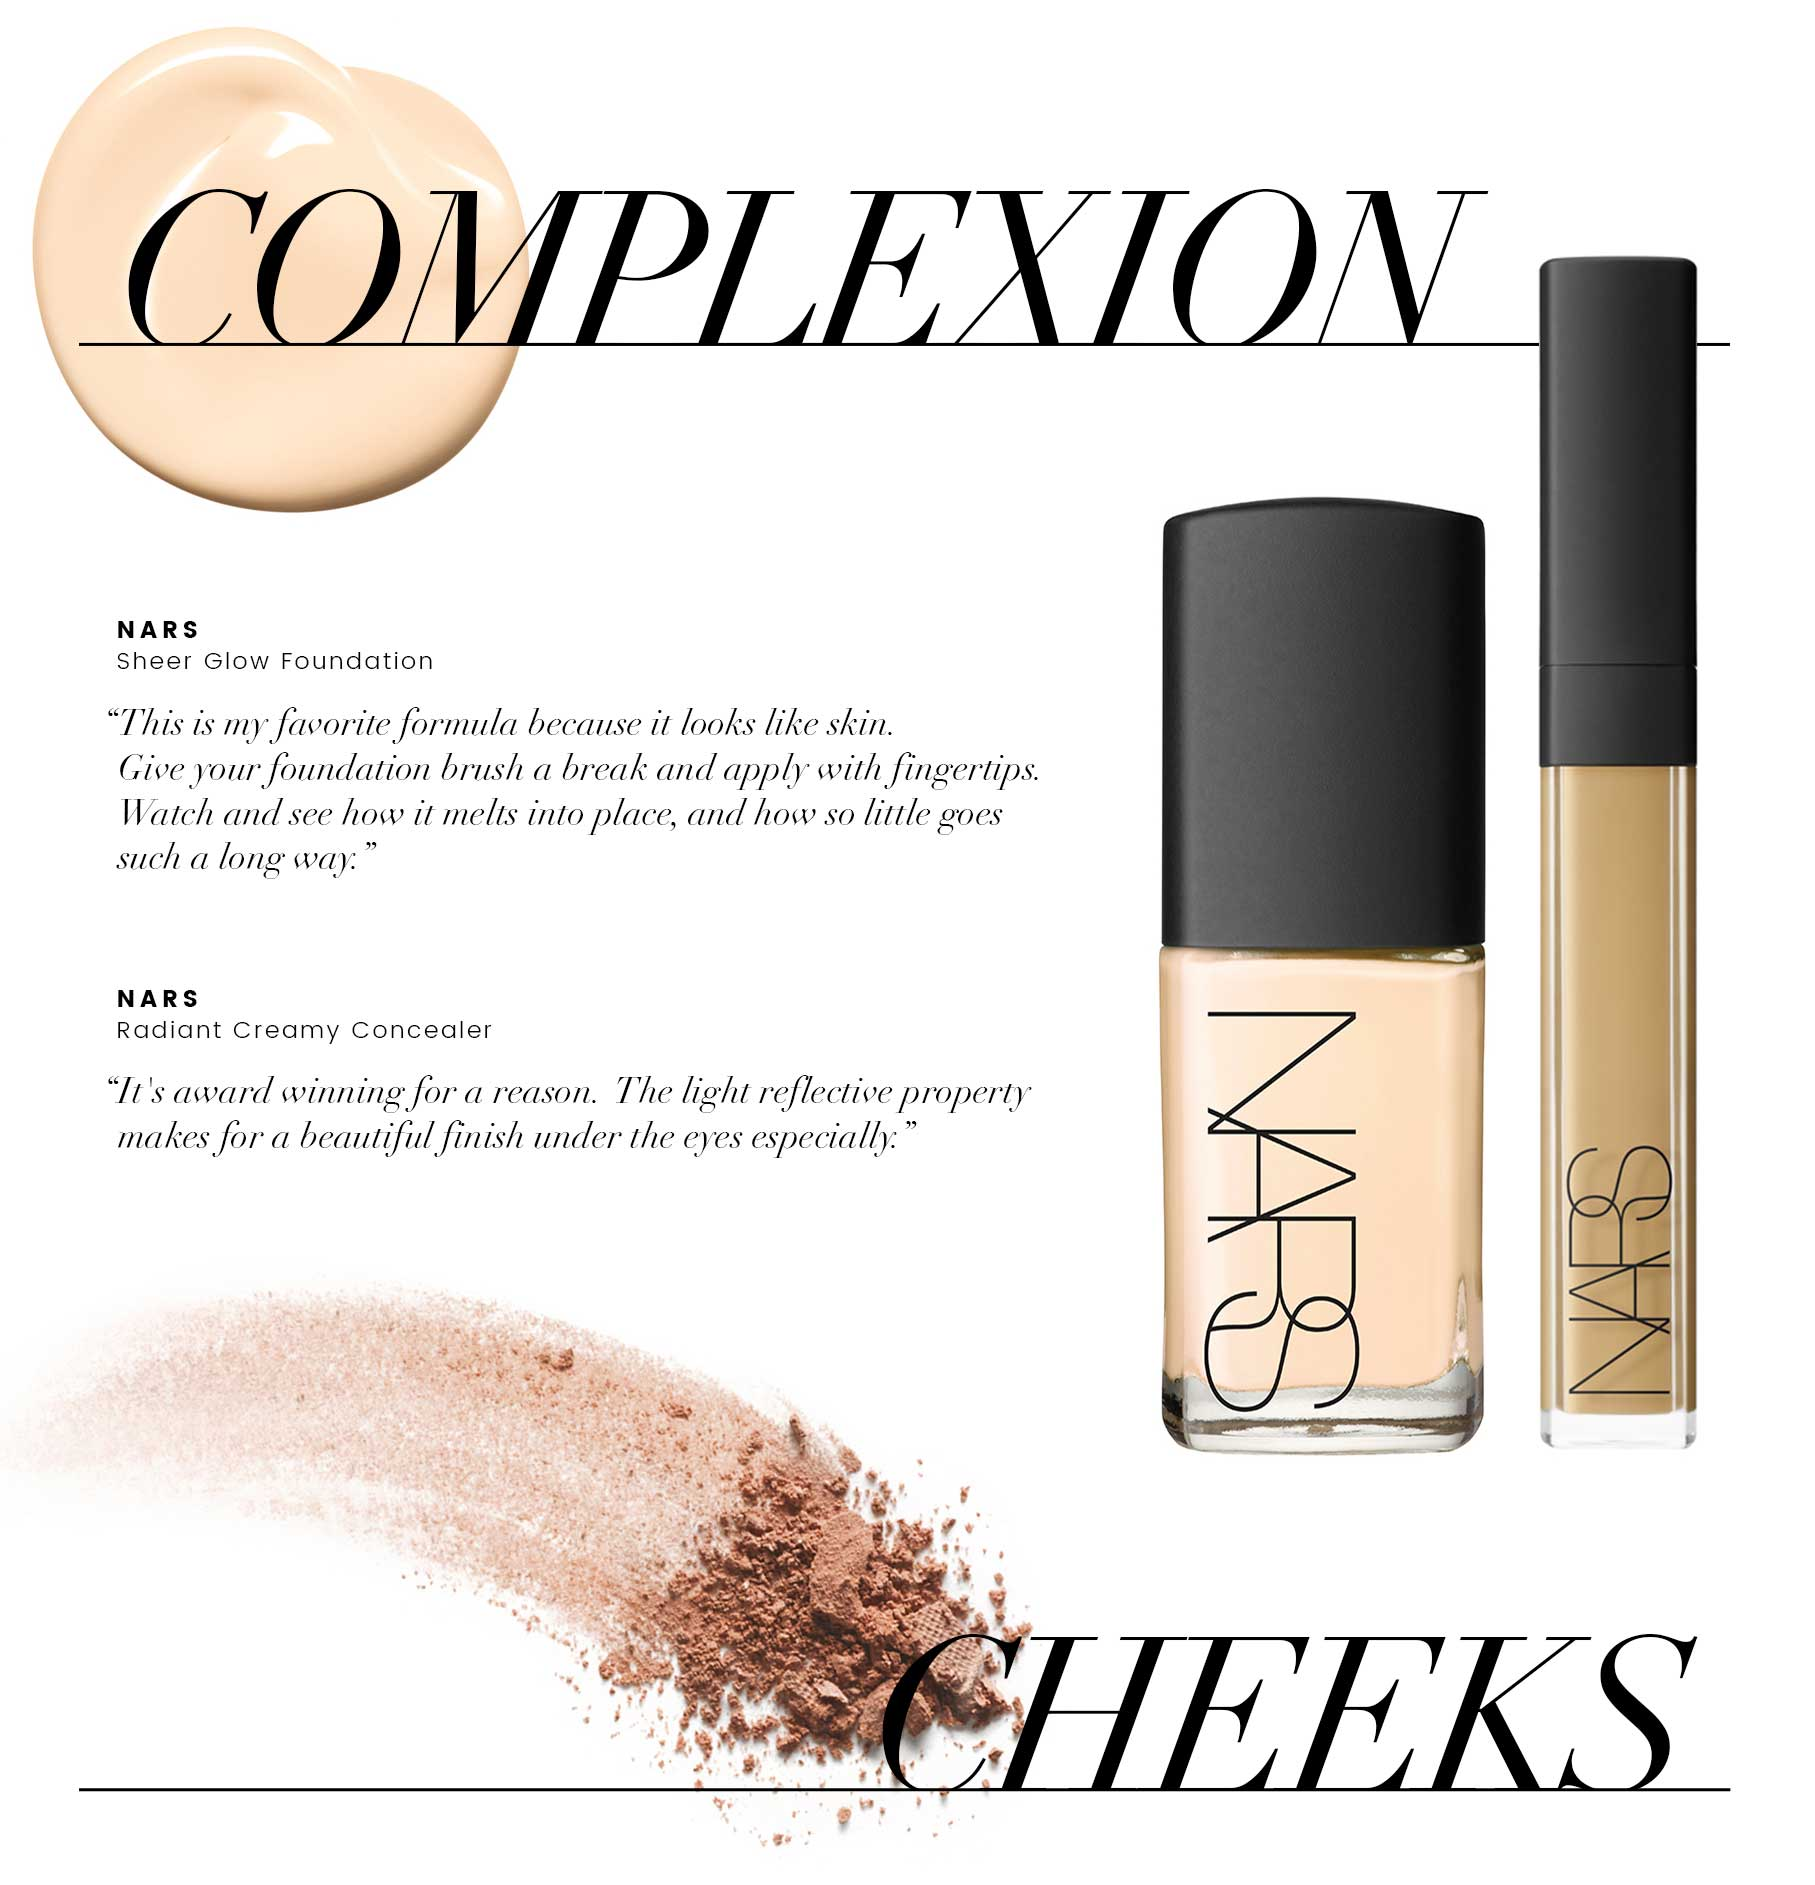 beauty tips - complexion